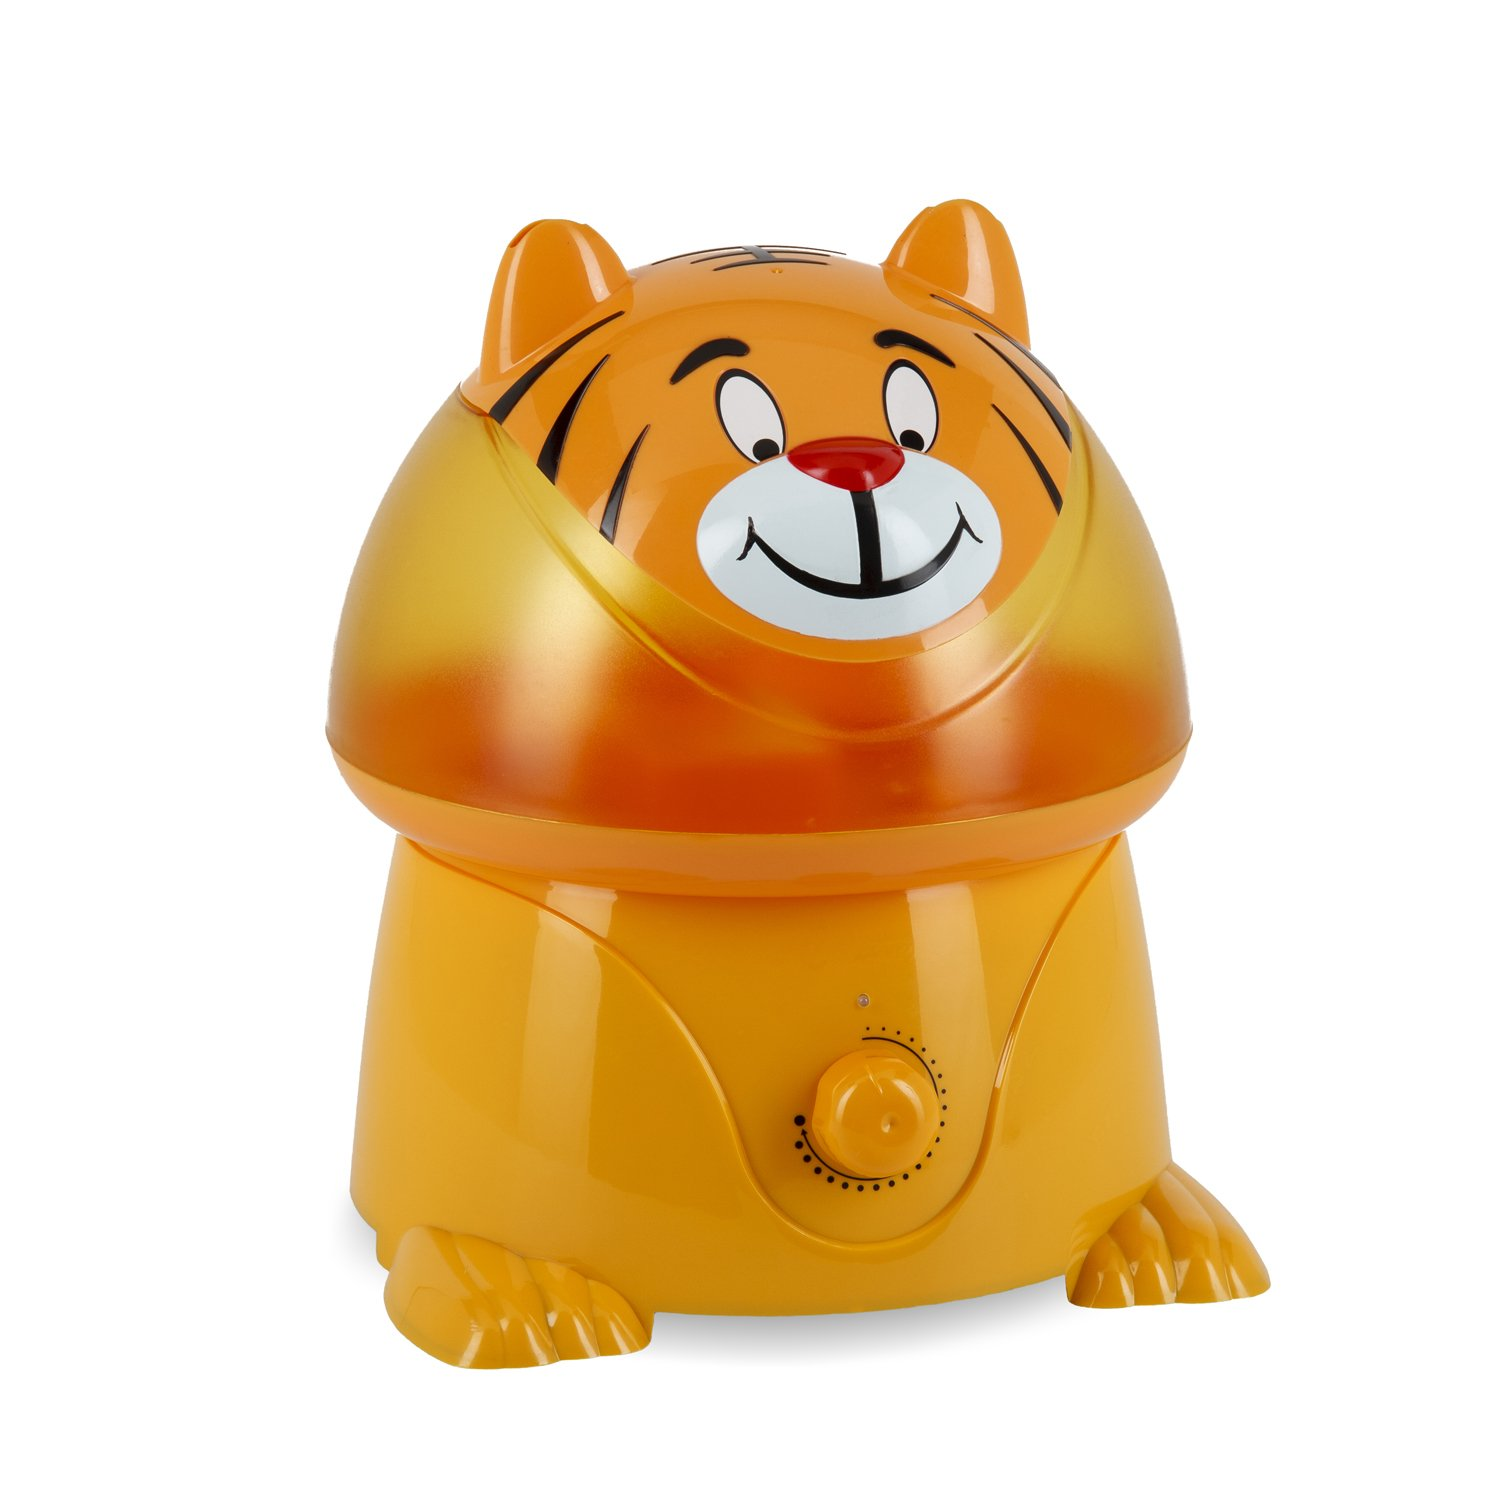 Crane USA Cool Mist Humidifiers for Kids, Tiger